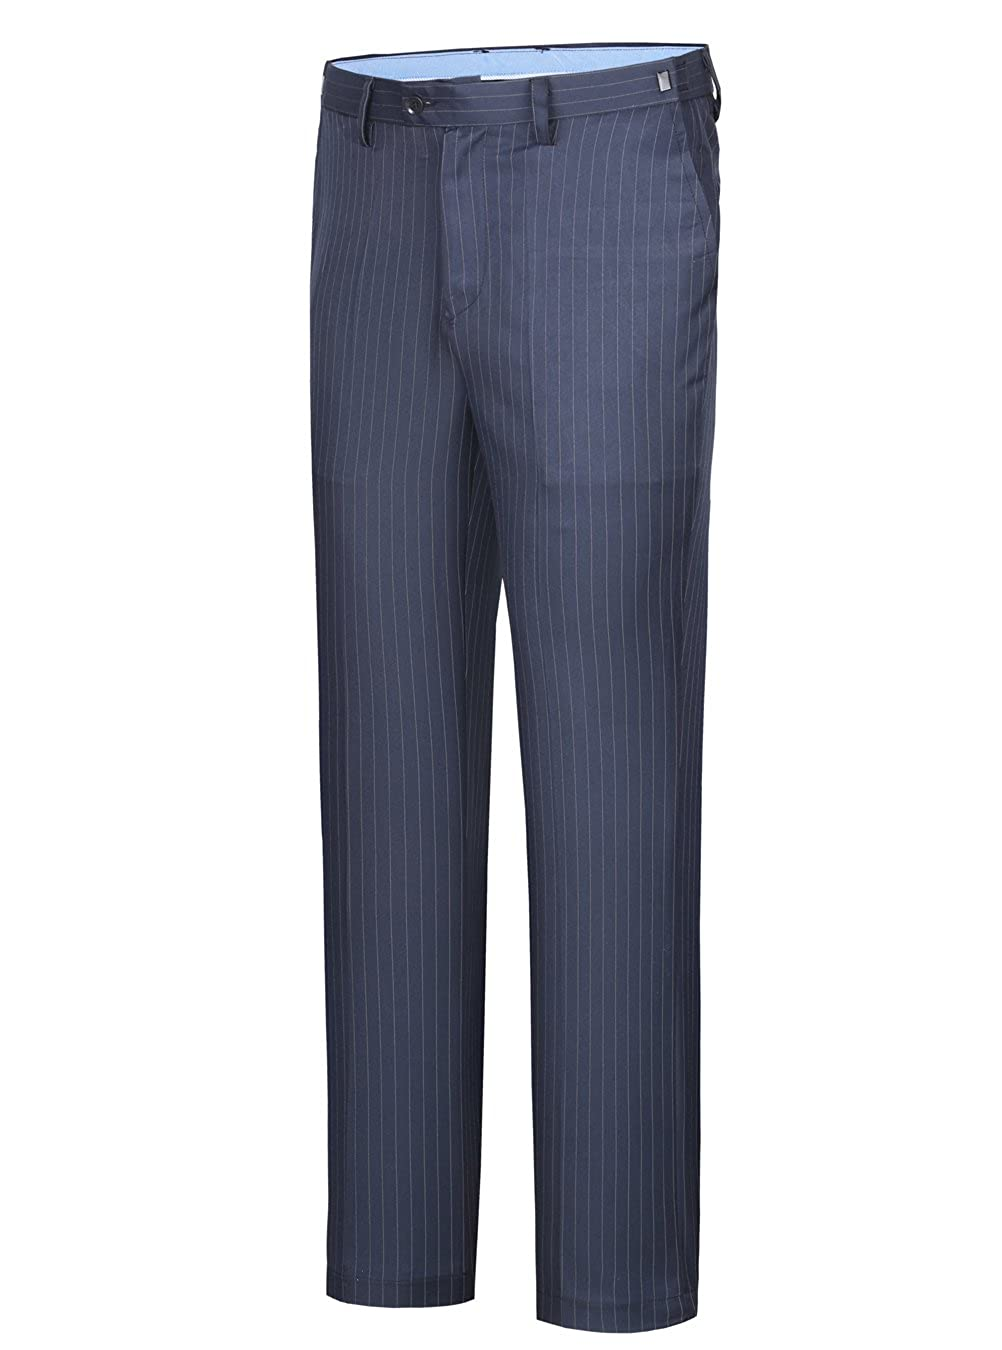 CMDC Mens Formal Dress Pants Wrinkle-Free Stripes Suit Trousers More Sizes